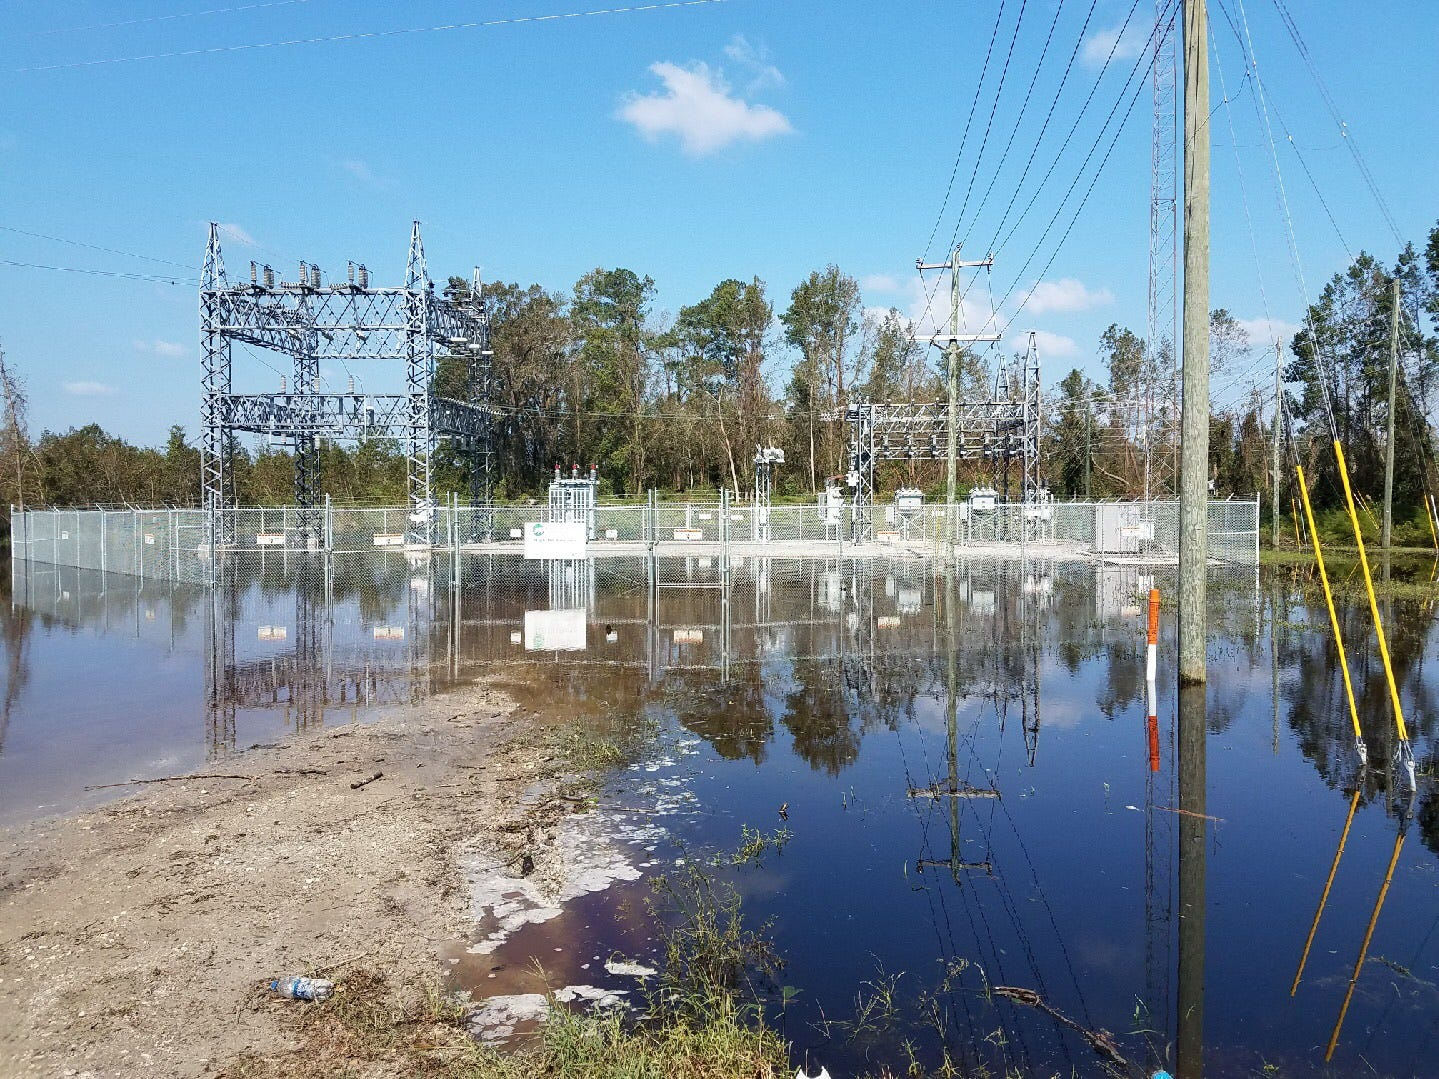 A photo submitted by George Dawson showing a power plant flooded with water. (George Dawson/Courtesy)